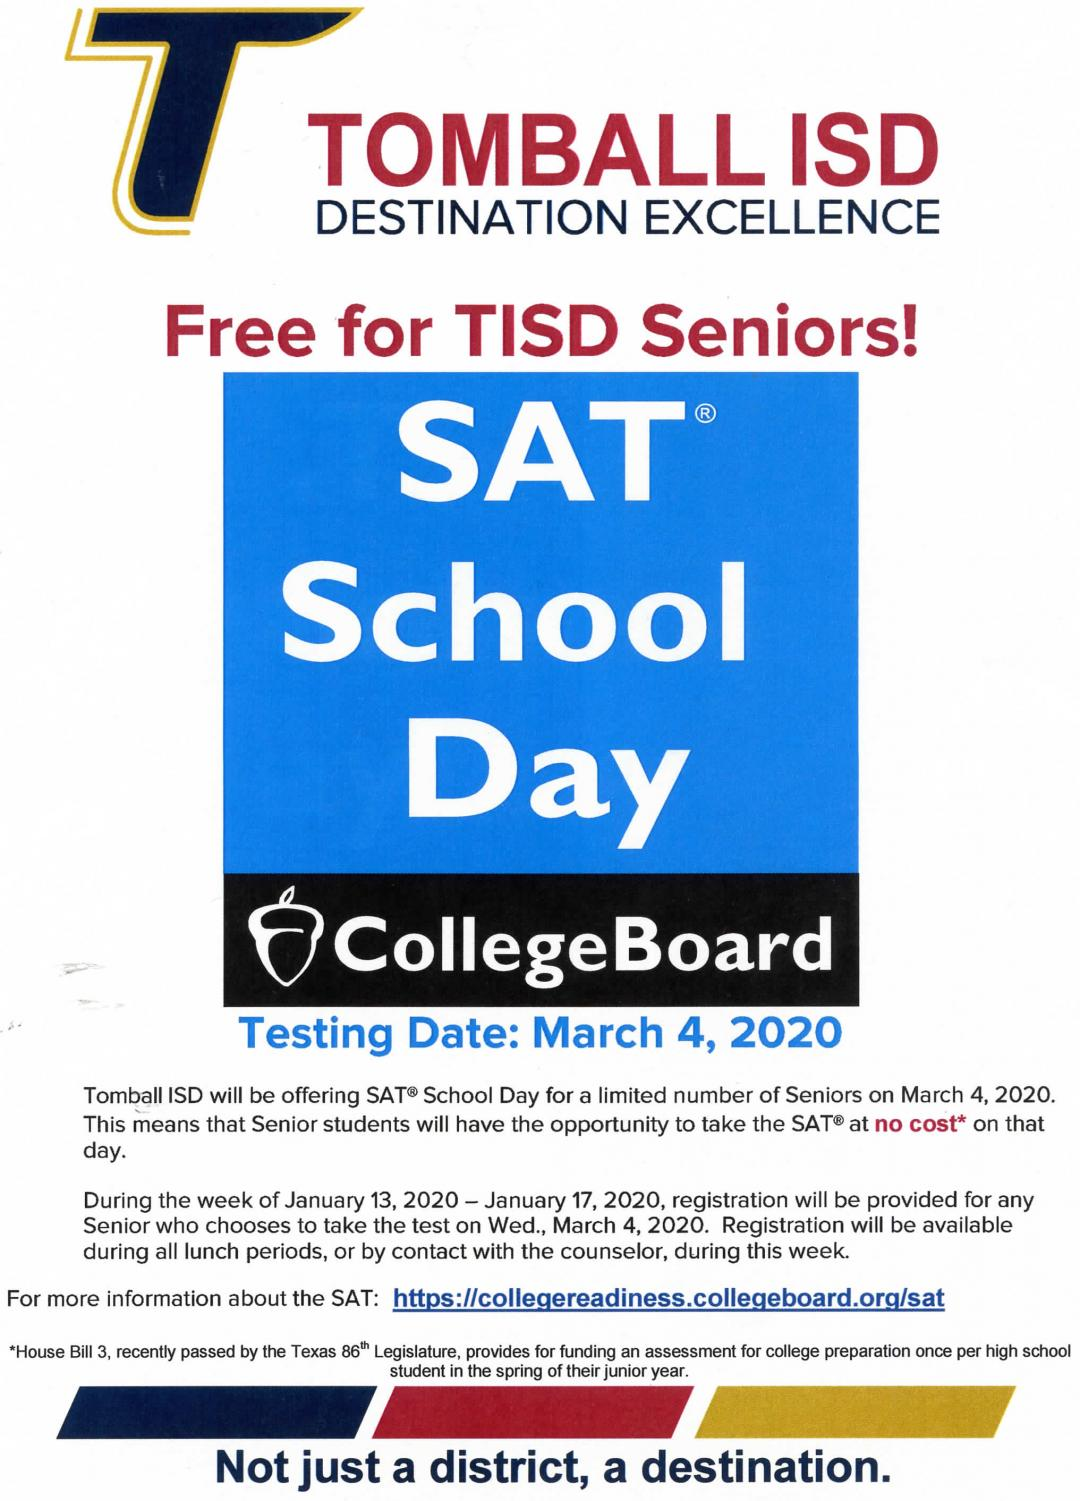 This flier was sent out to all seniors in the school district.